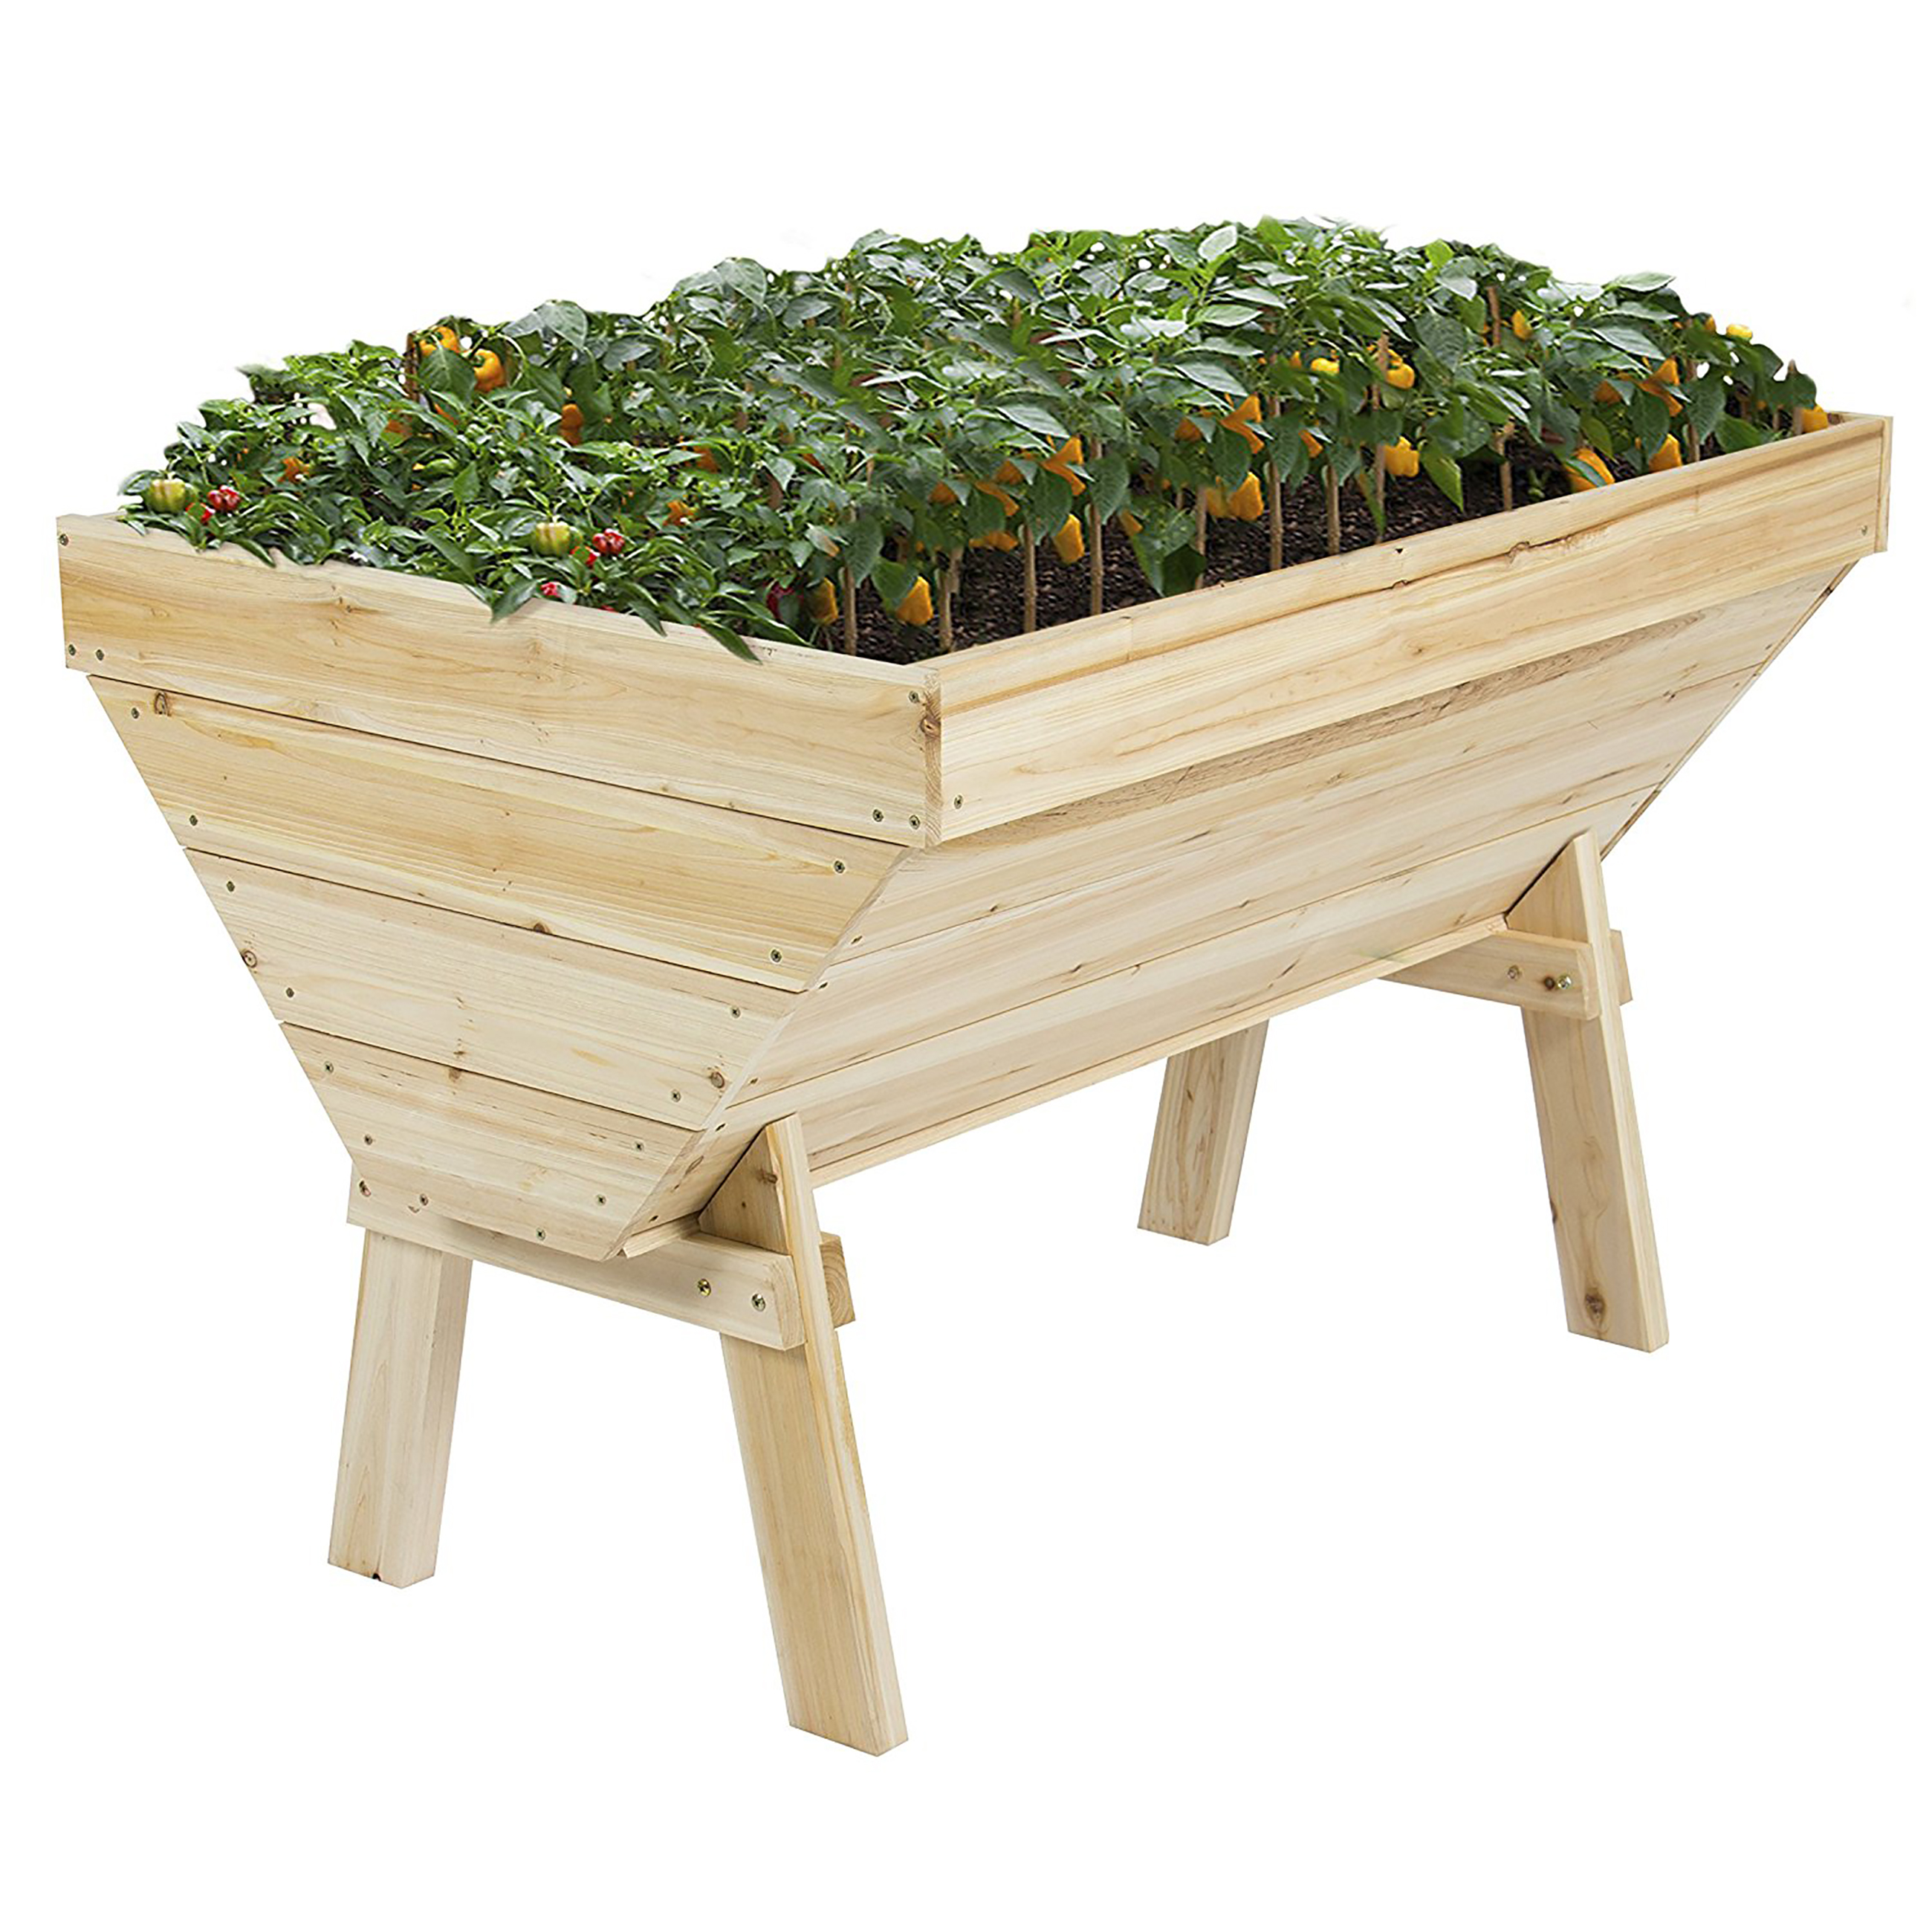 Best Choice Products 4x3ft Wooden Raised Vegetable Flower Bed Planter for Garden, Patio, Backyard - Natural